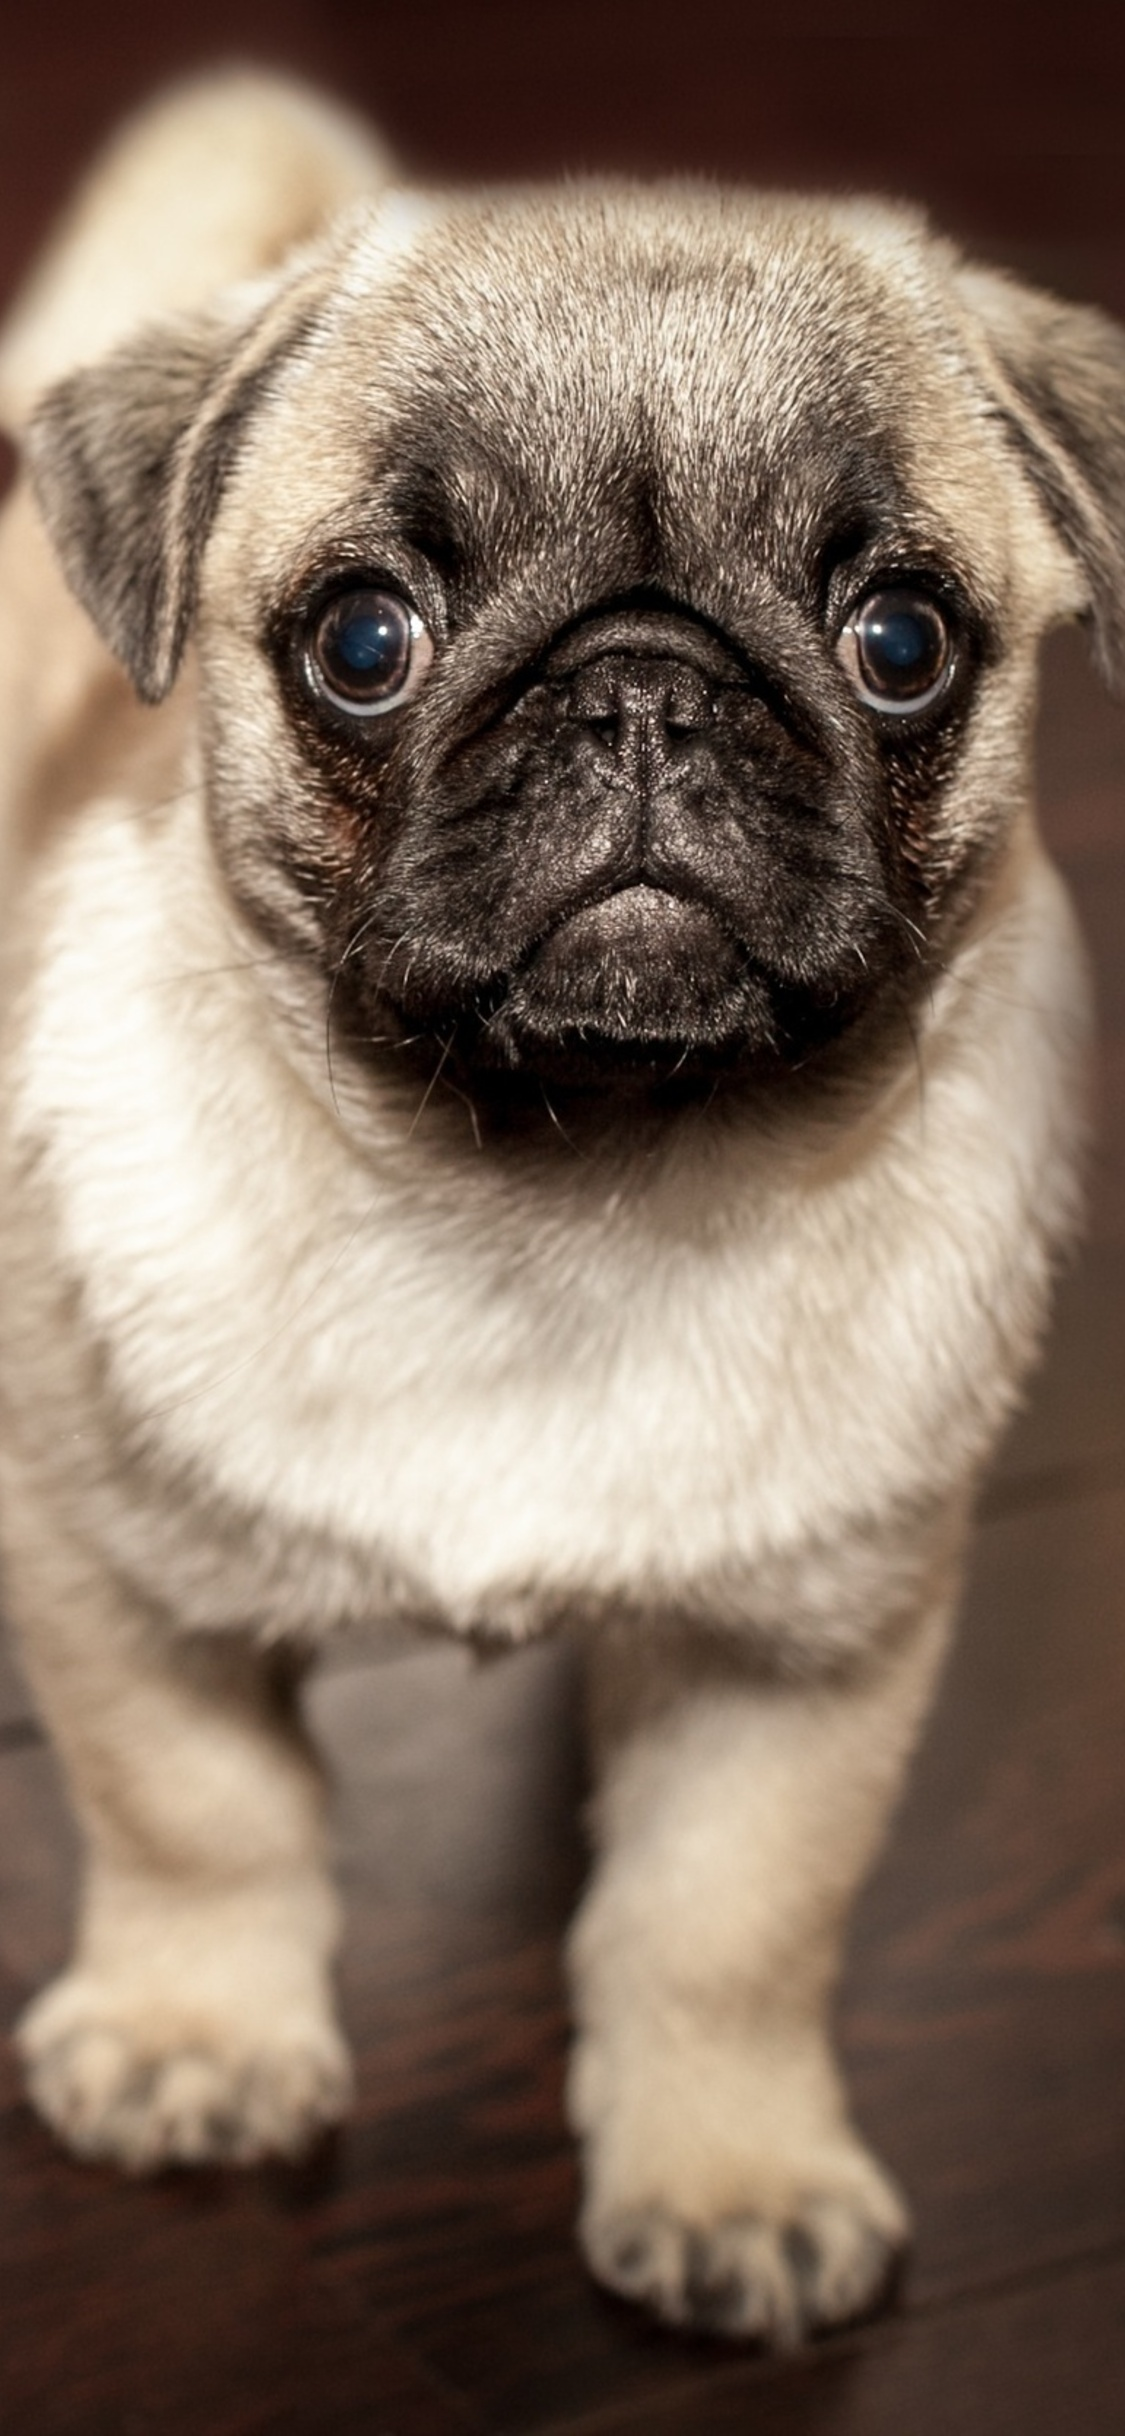 1125x2436 Pug Puppy Iphone XIphone 10 HD 4k Wallpapers Images